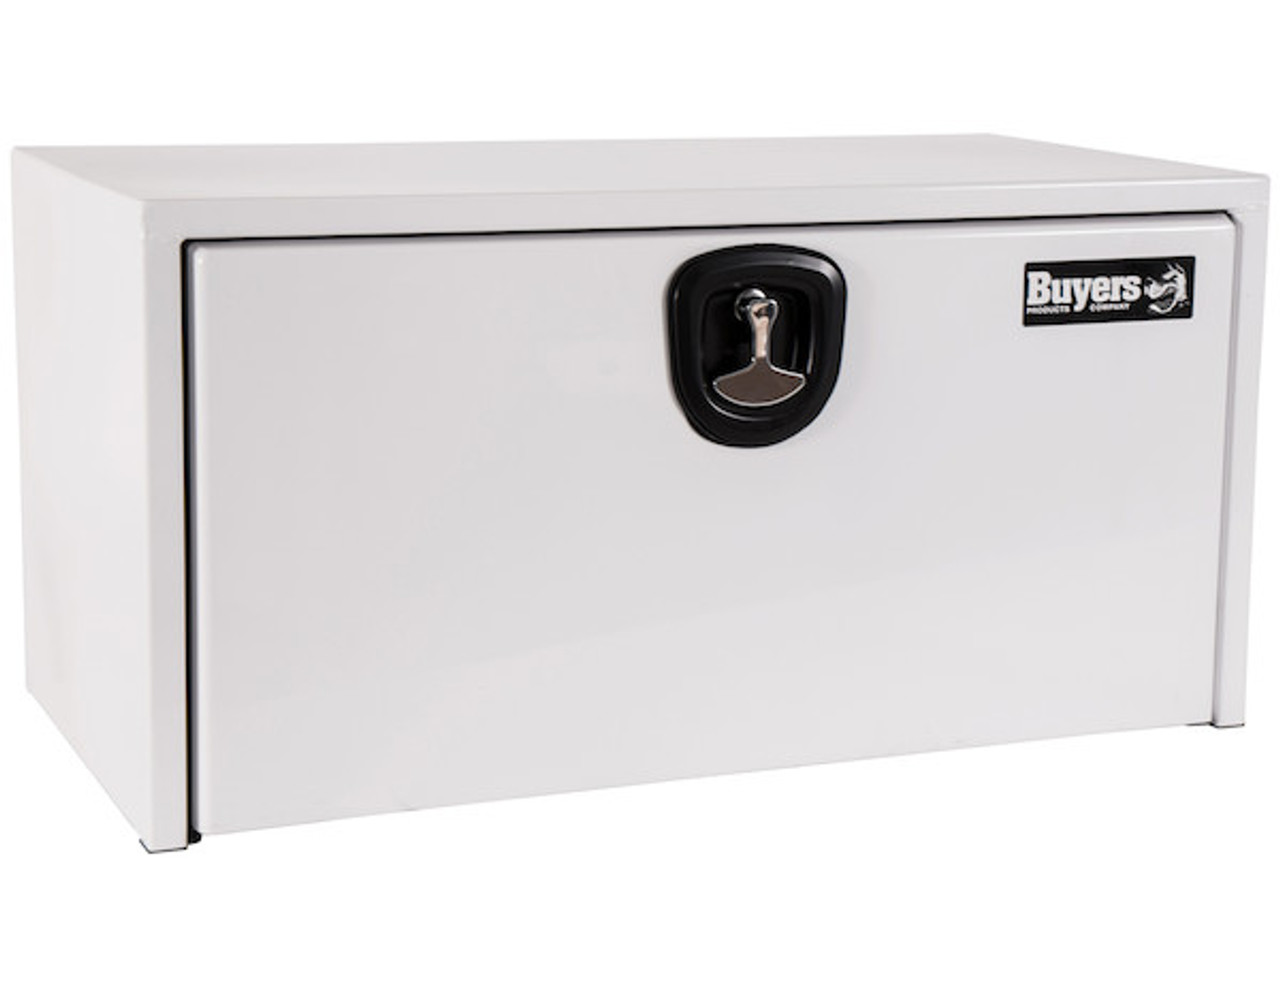 """1734403 BUYERS PRODUCTS WHITE STEEL UNDERBODY TRUCK TOOLBOX WITH 3-POINT LATCH 24""""Hx24""""Dx30""""W"""